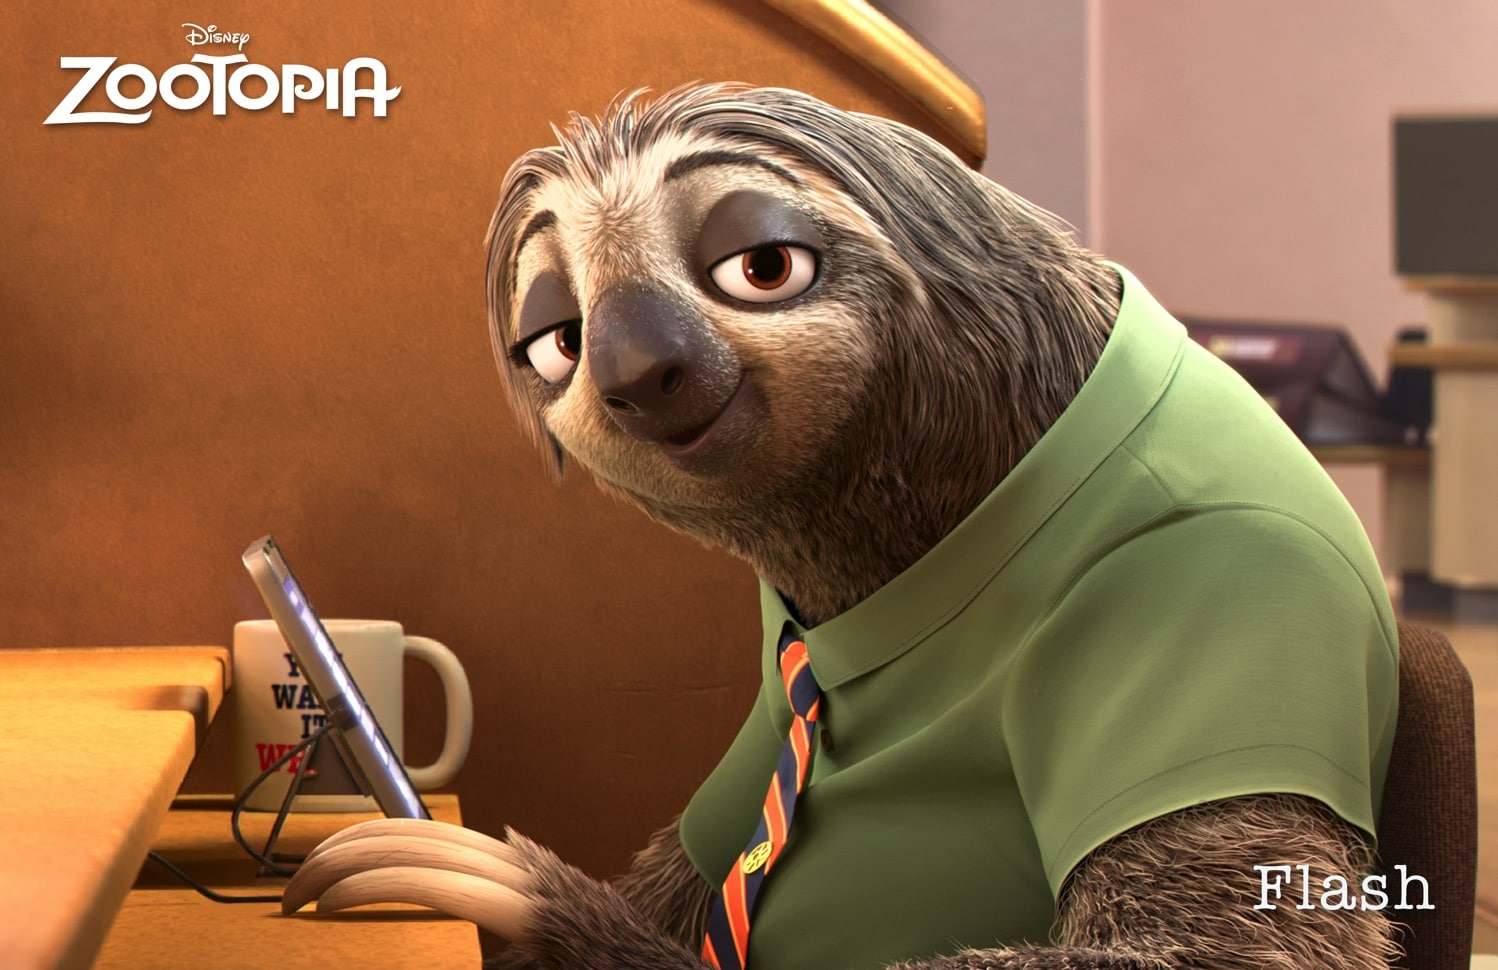 flash zootopia sloth